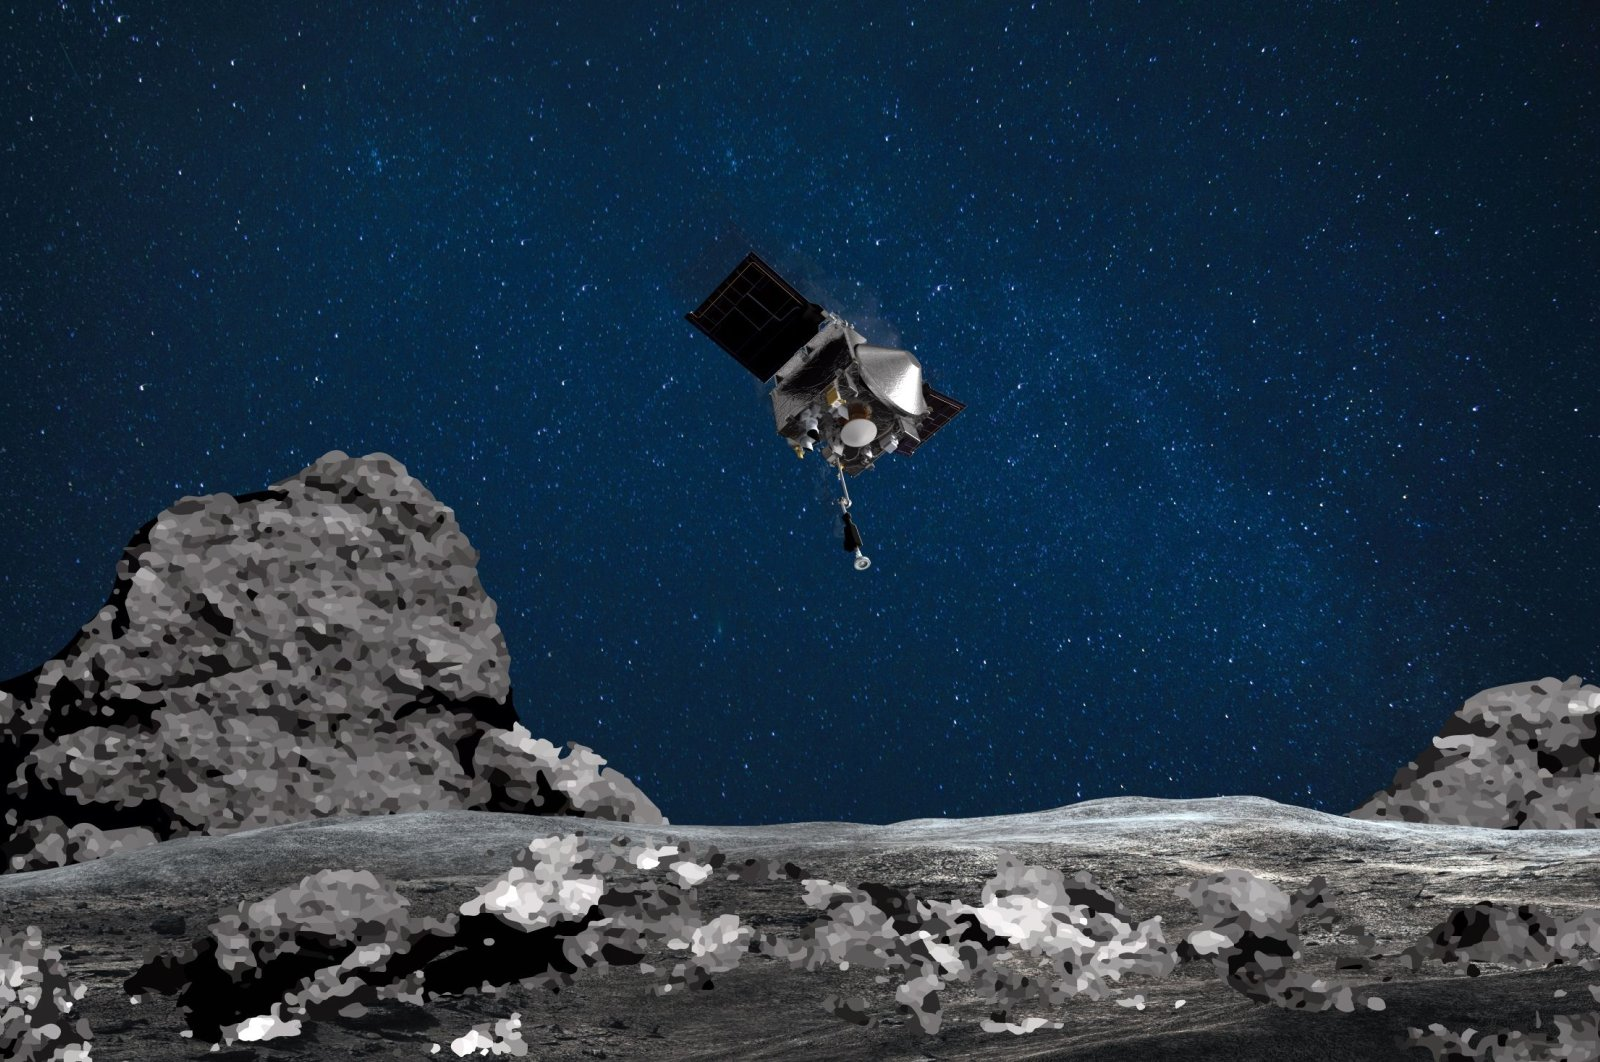 An artist's rendering shows NASA's OSIRIS-REx spacecraft descending toward asteroid Bennu to collect samples from the asteroid's surface. (AFP Photo)